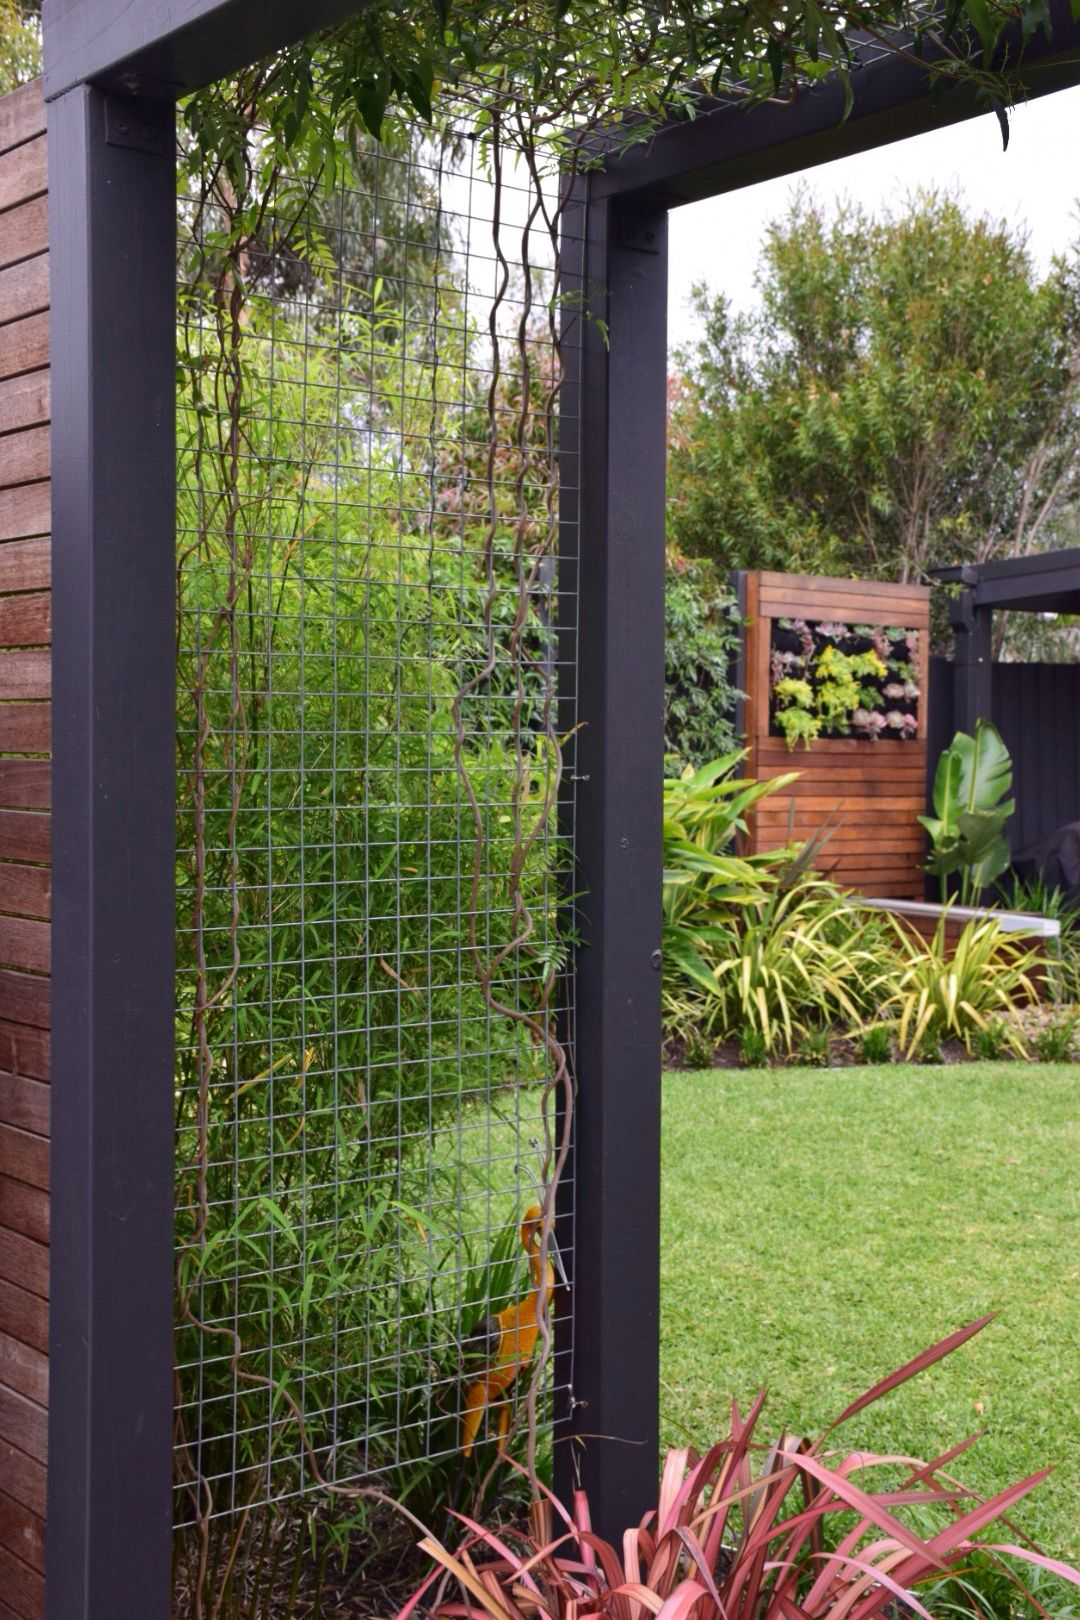 Vertical Garden Design With Gazebo Installation Climbing Frame - Vertical Garden - Water Feature - Bali Inspired Garden -  Botanical Space Landscapes - Landscape Design u0026 Construction - Melbourne,  ...